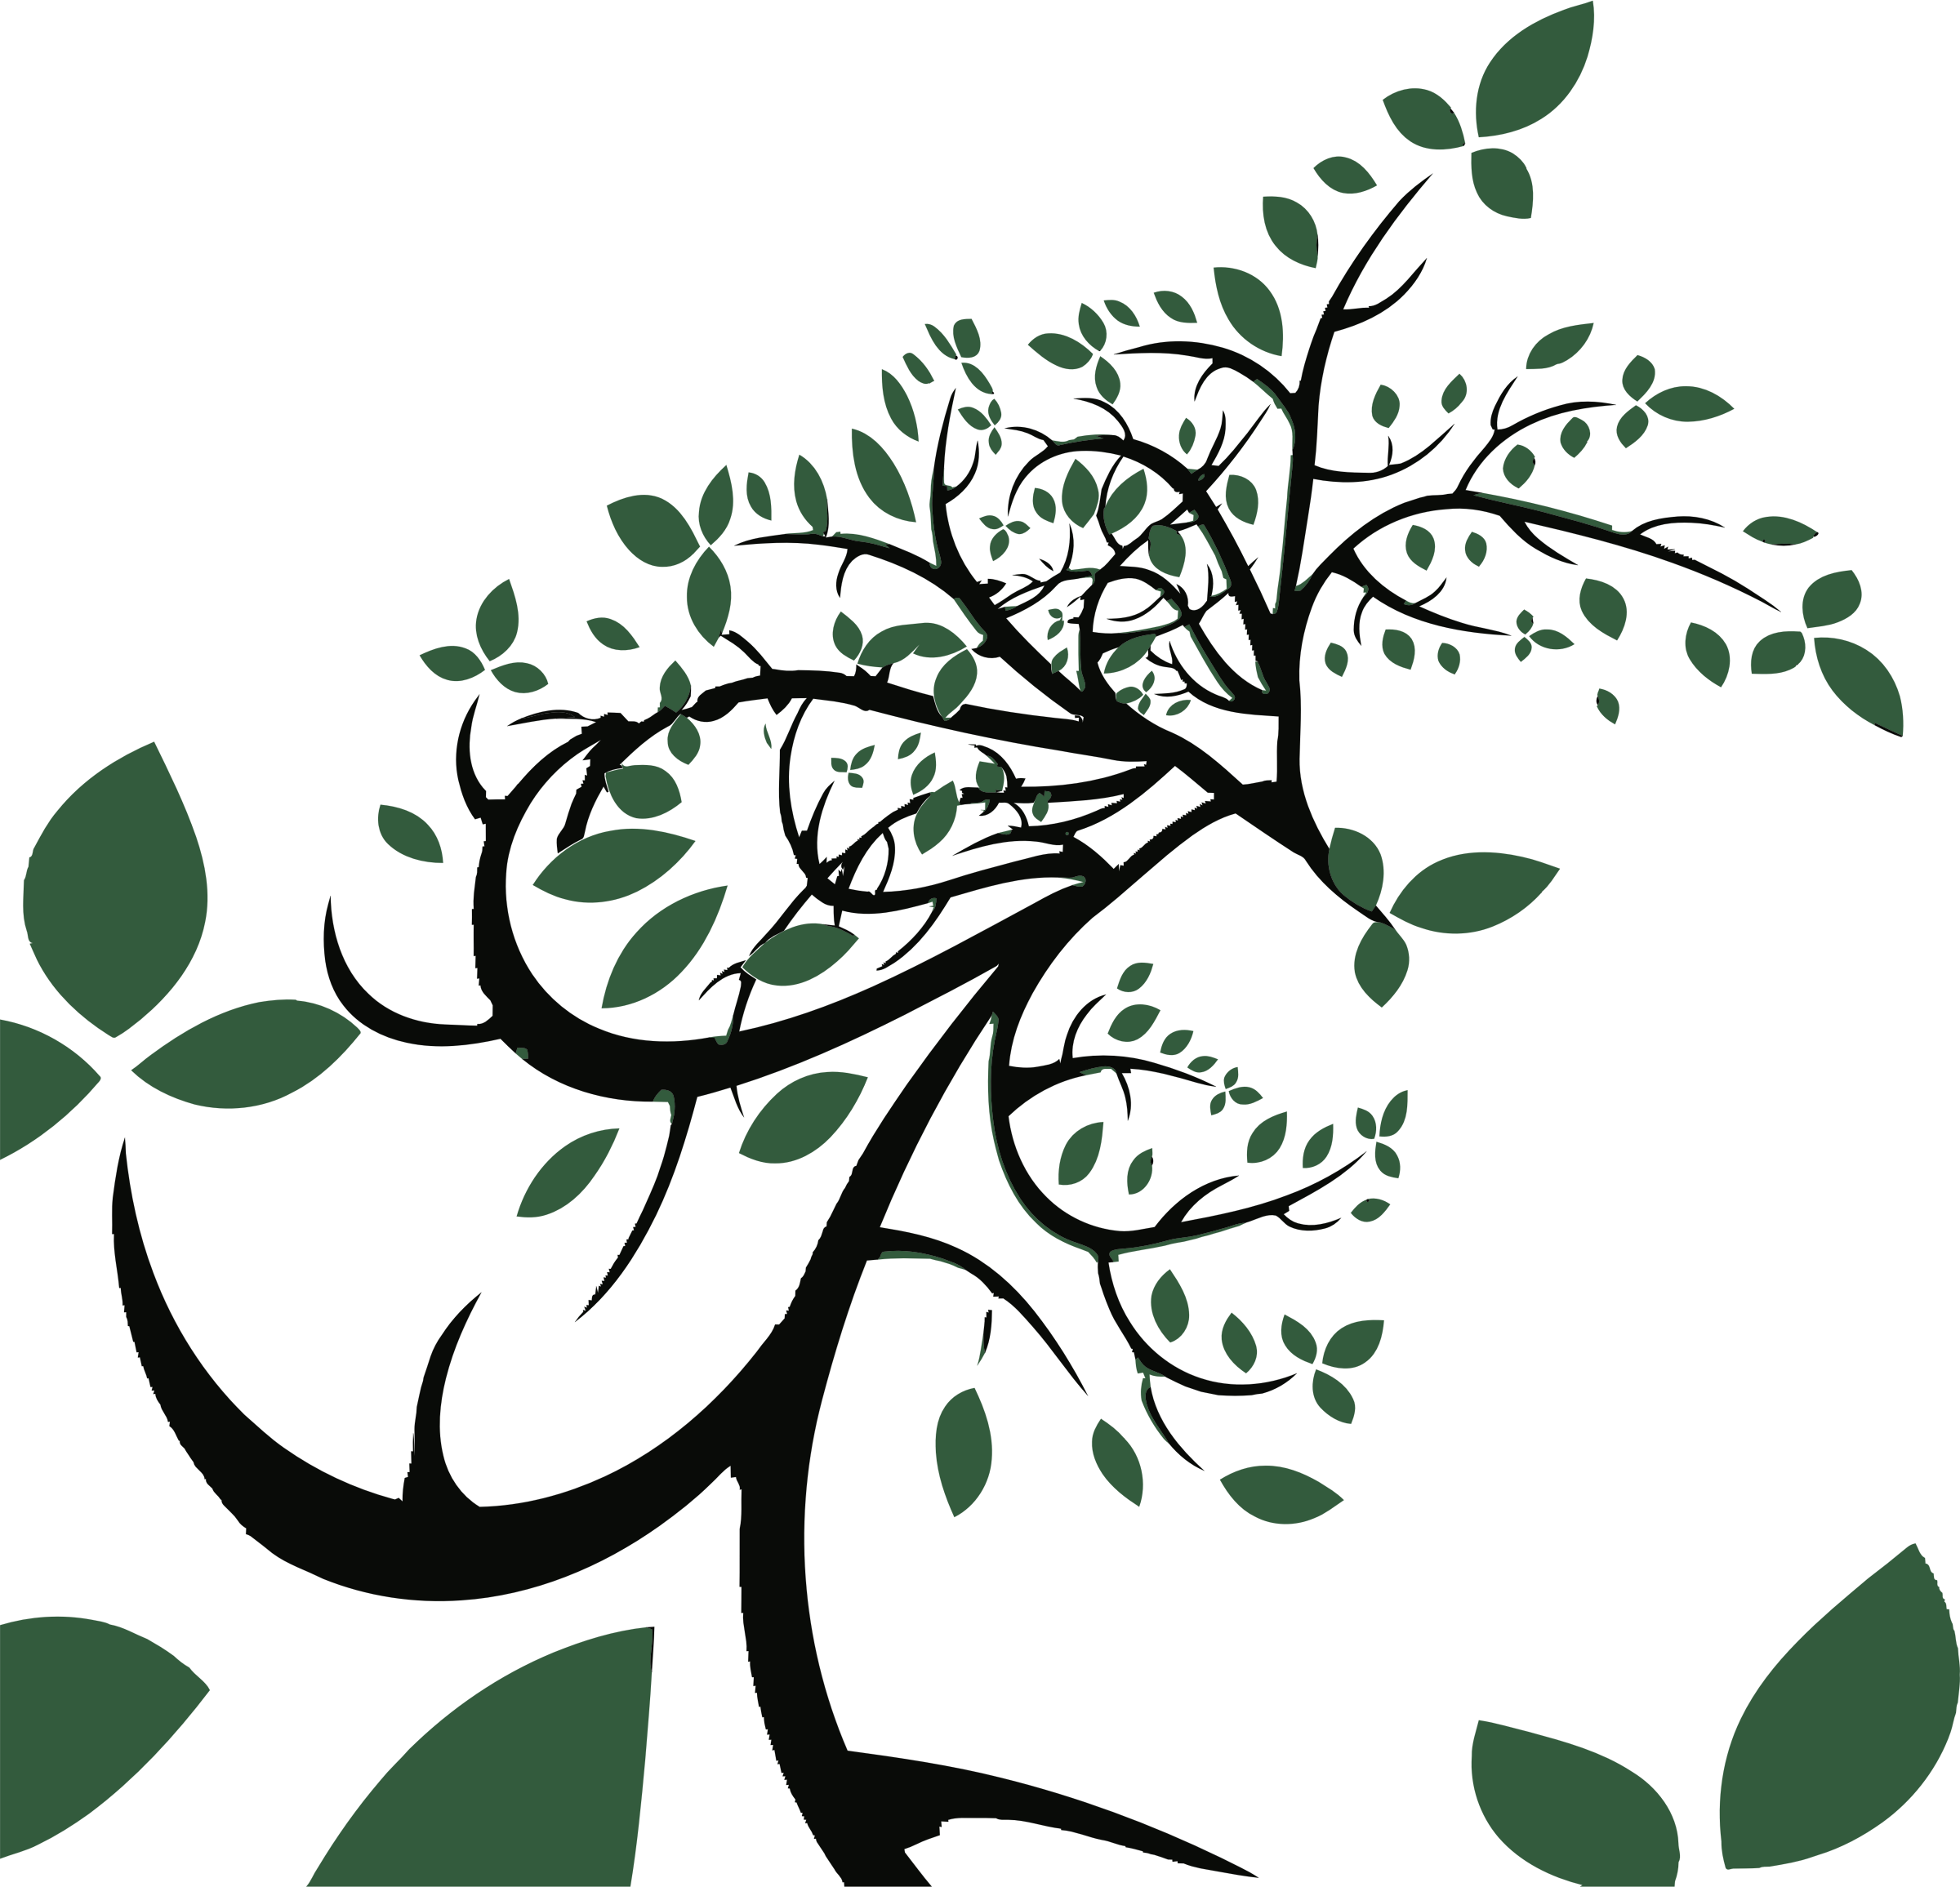 Tree with leaves clipart banner library library Clipart - Stylized Tree With Leaves banner library library